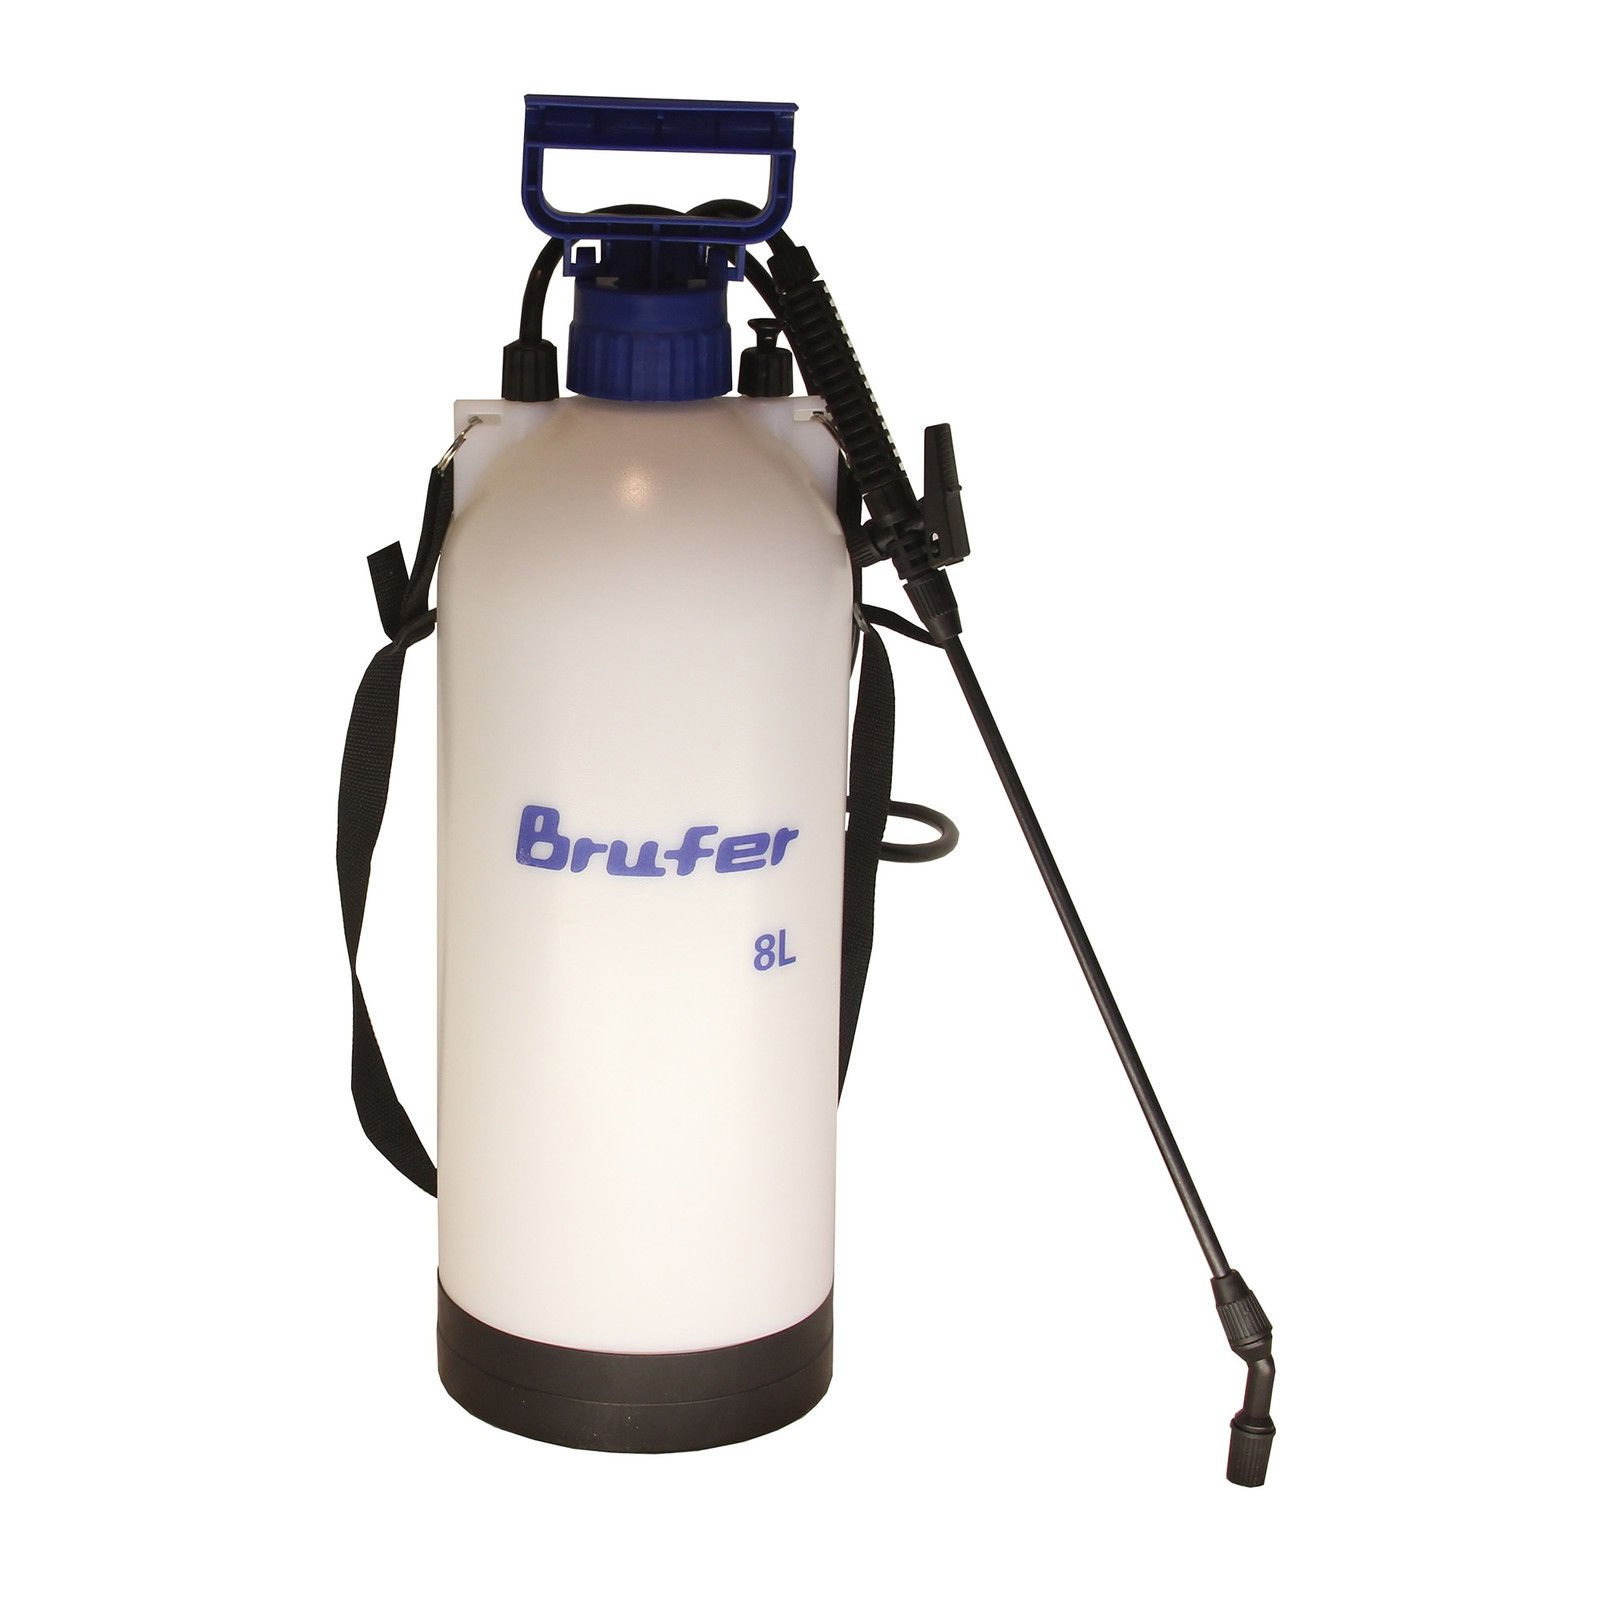 Brufer (R) Fumigation Sprayer (8L - 2.16Gal)